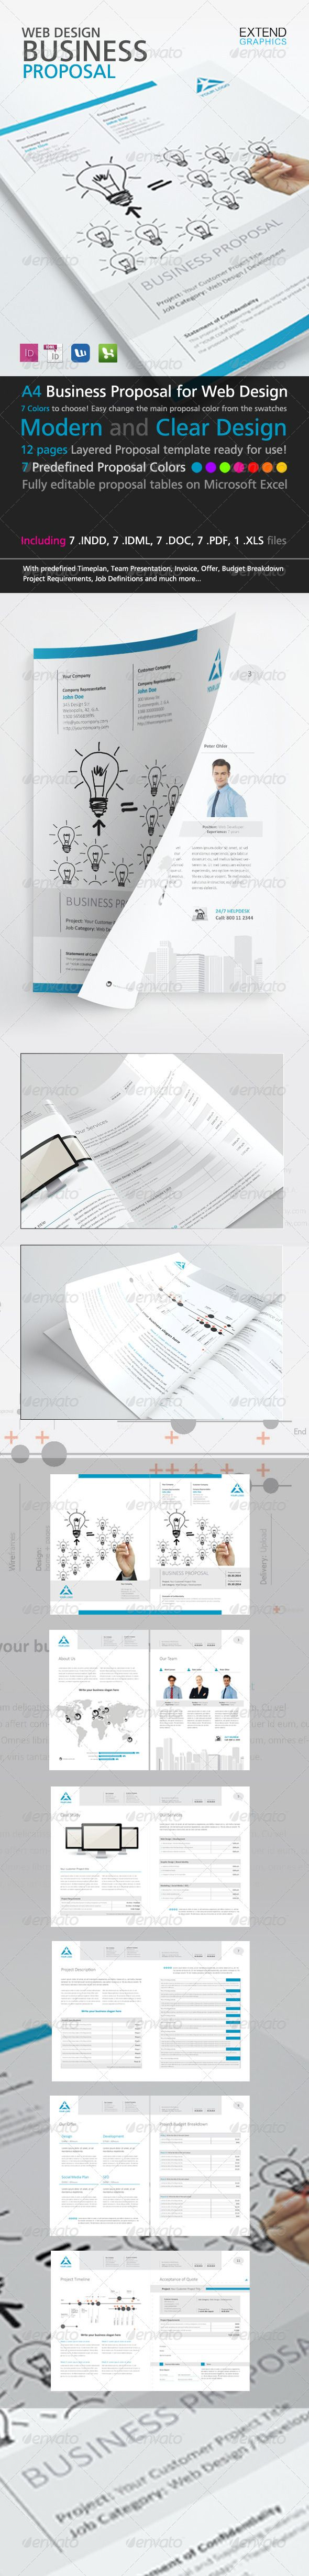 Web Design Business Proposal Template - Proposals & Invoices Stationery